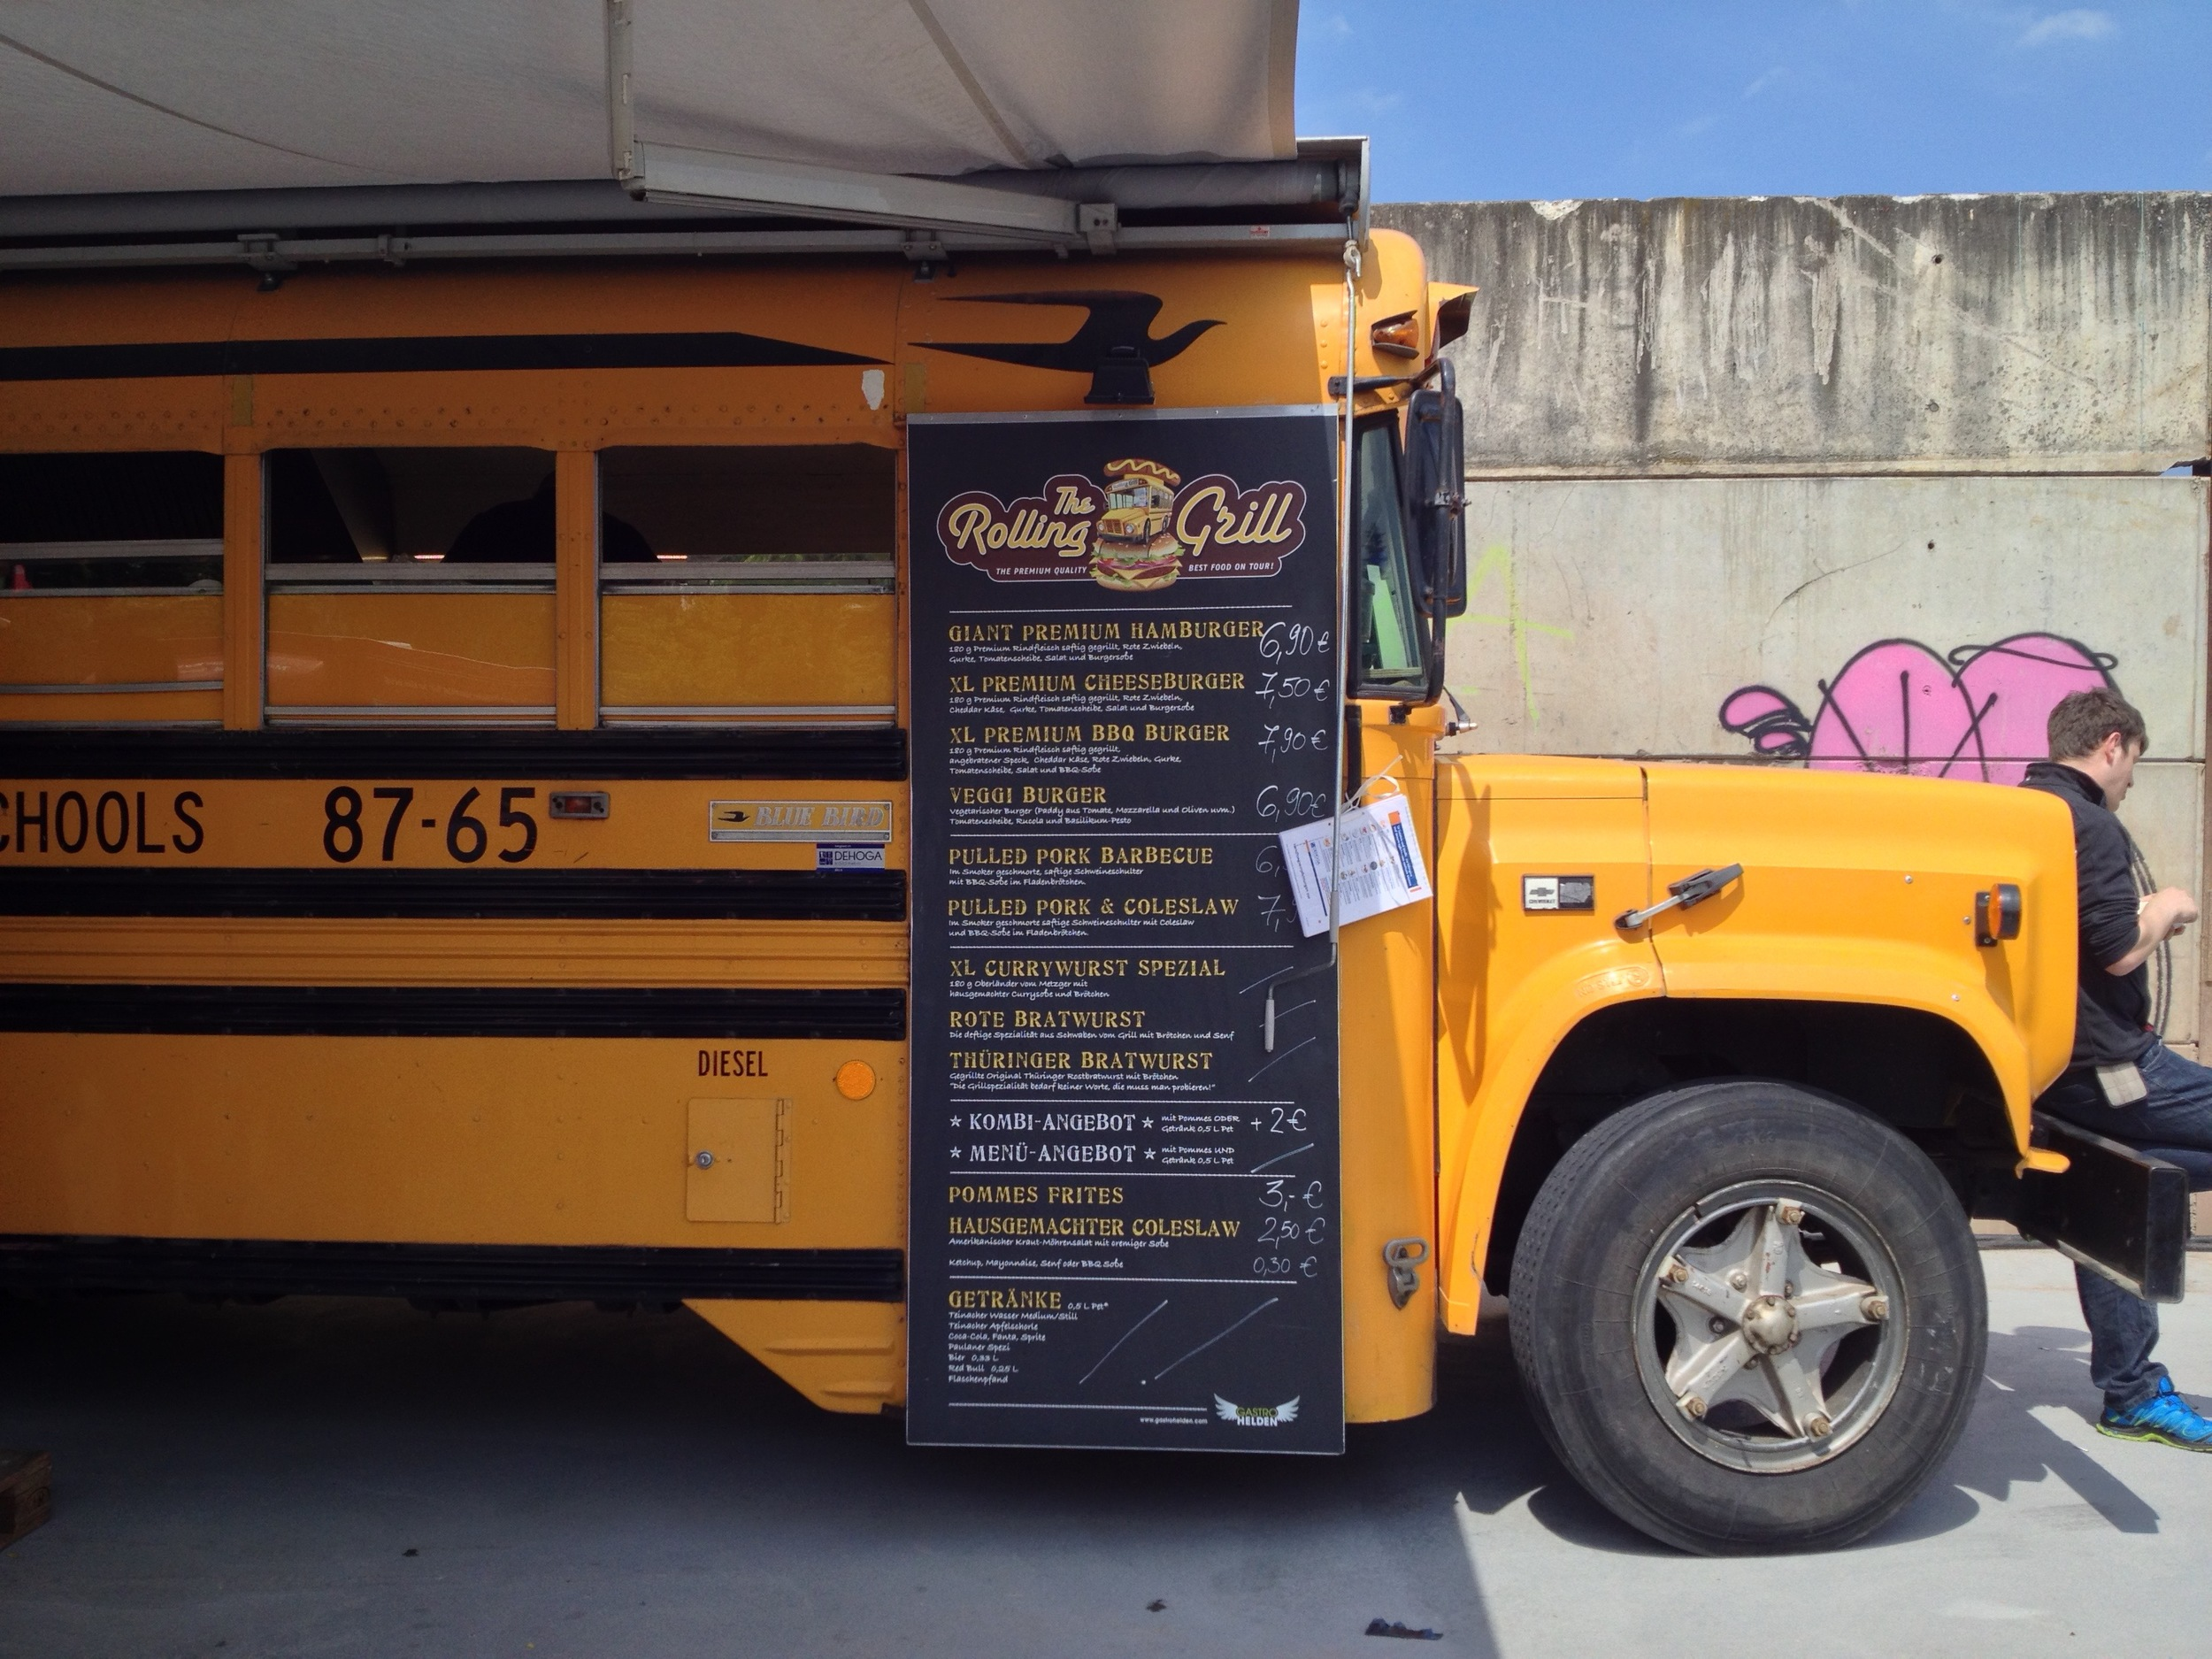 The very cool yellow school bus from Gastro Helden